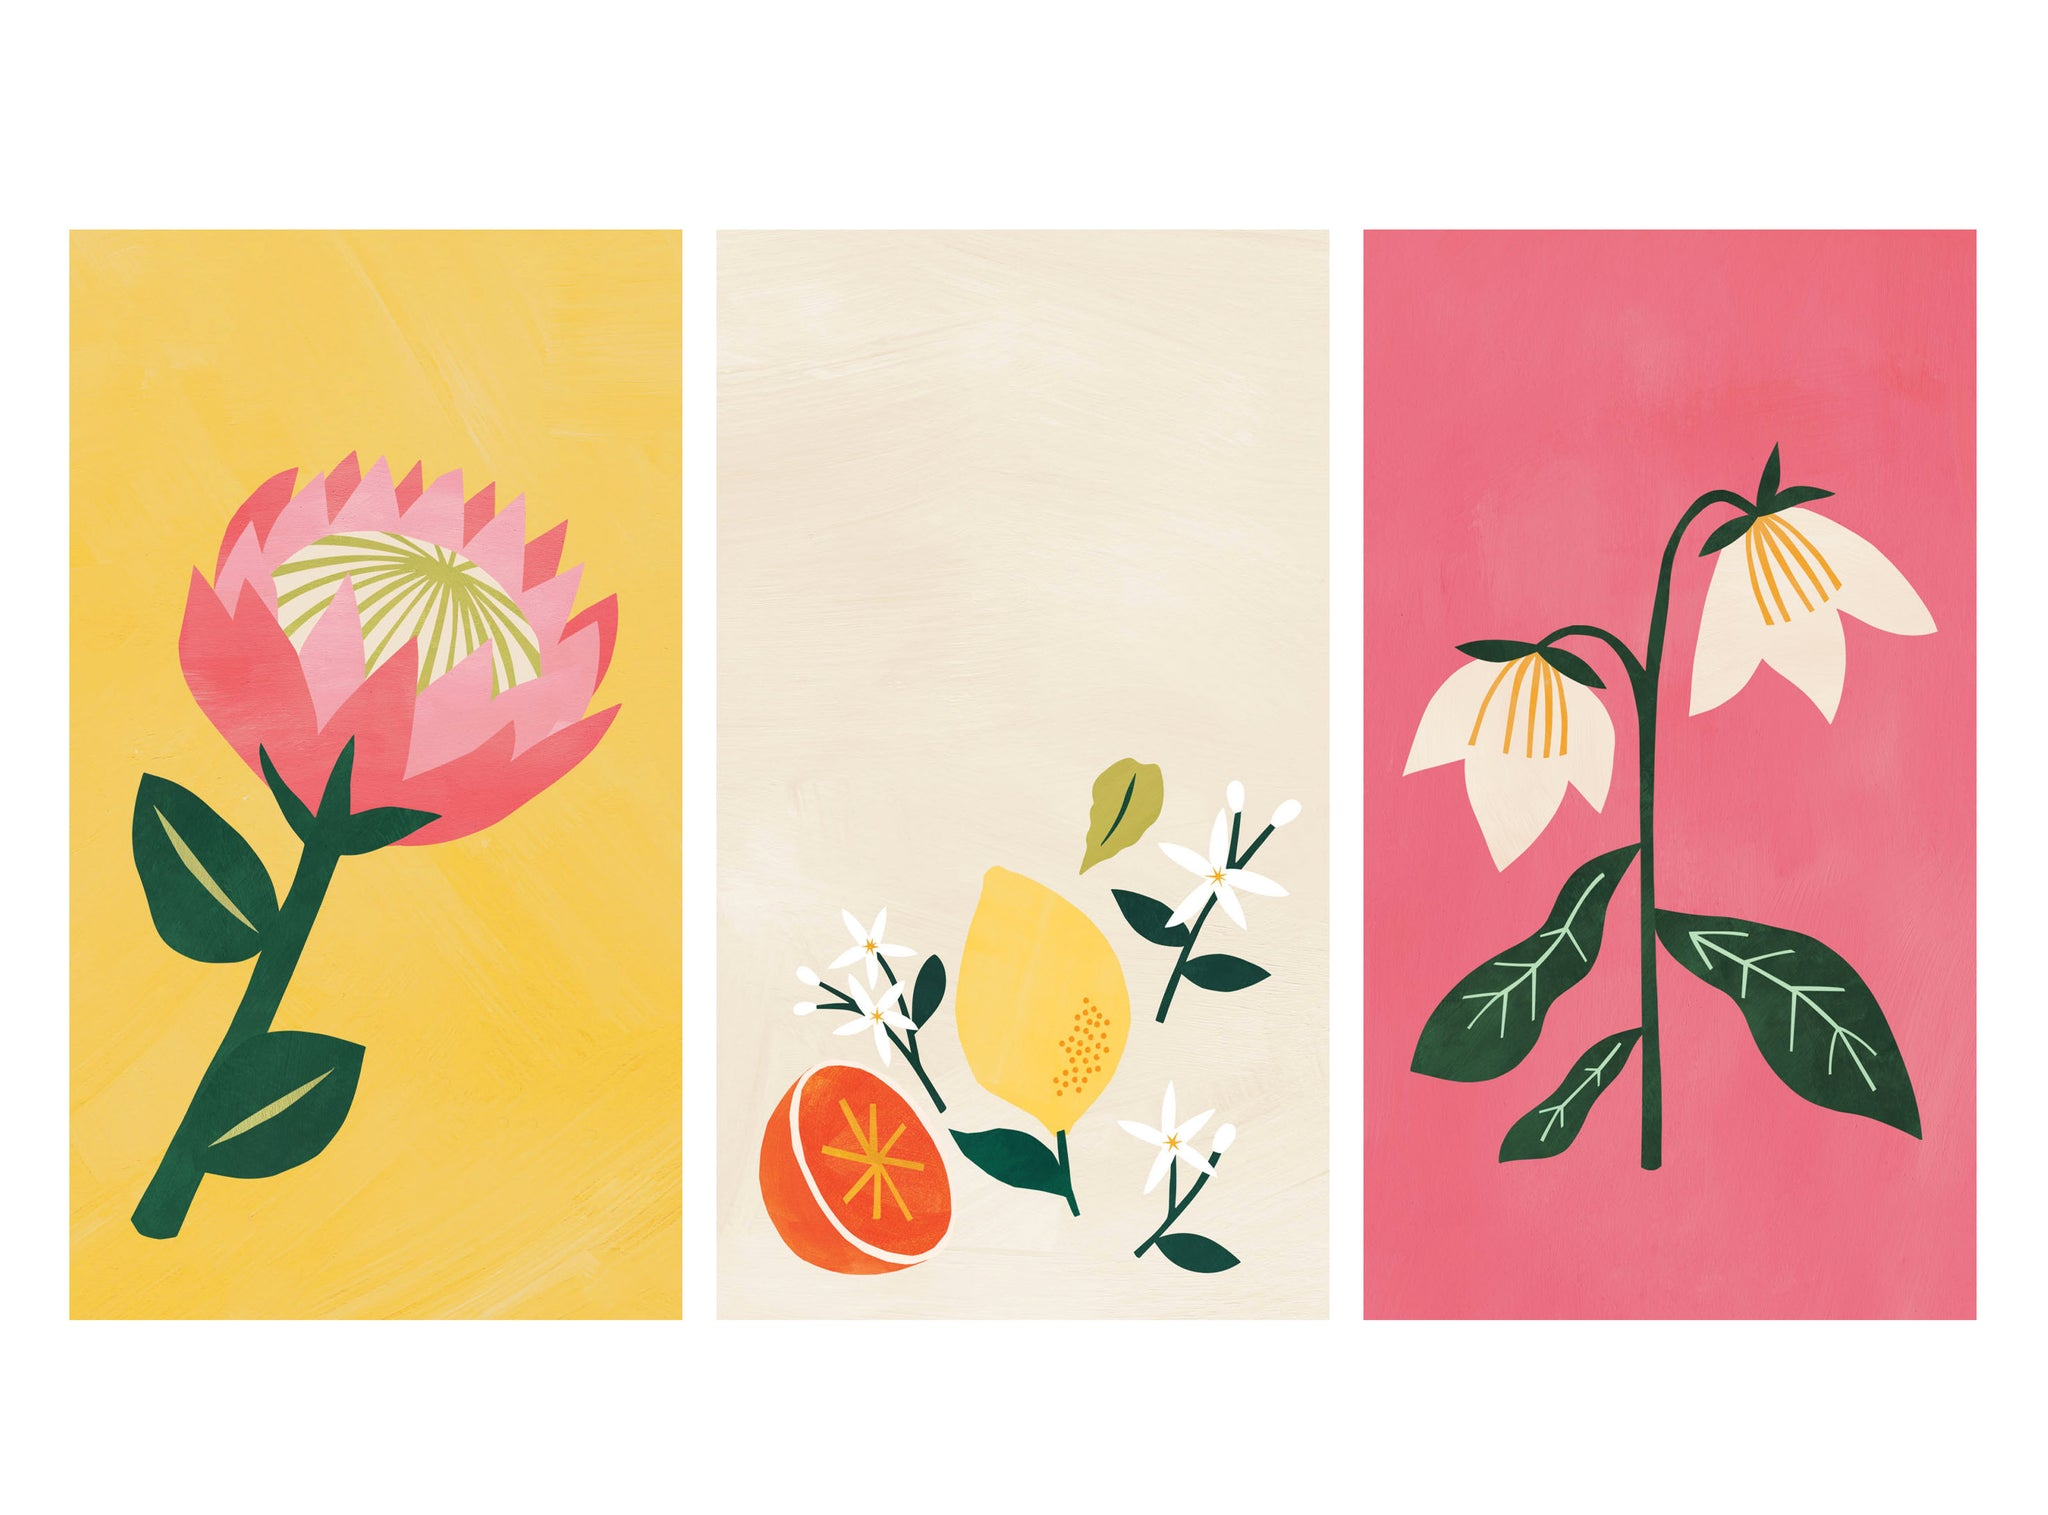 Botanical themed illustrated phone wallpapers | Raspberry Blossom